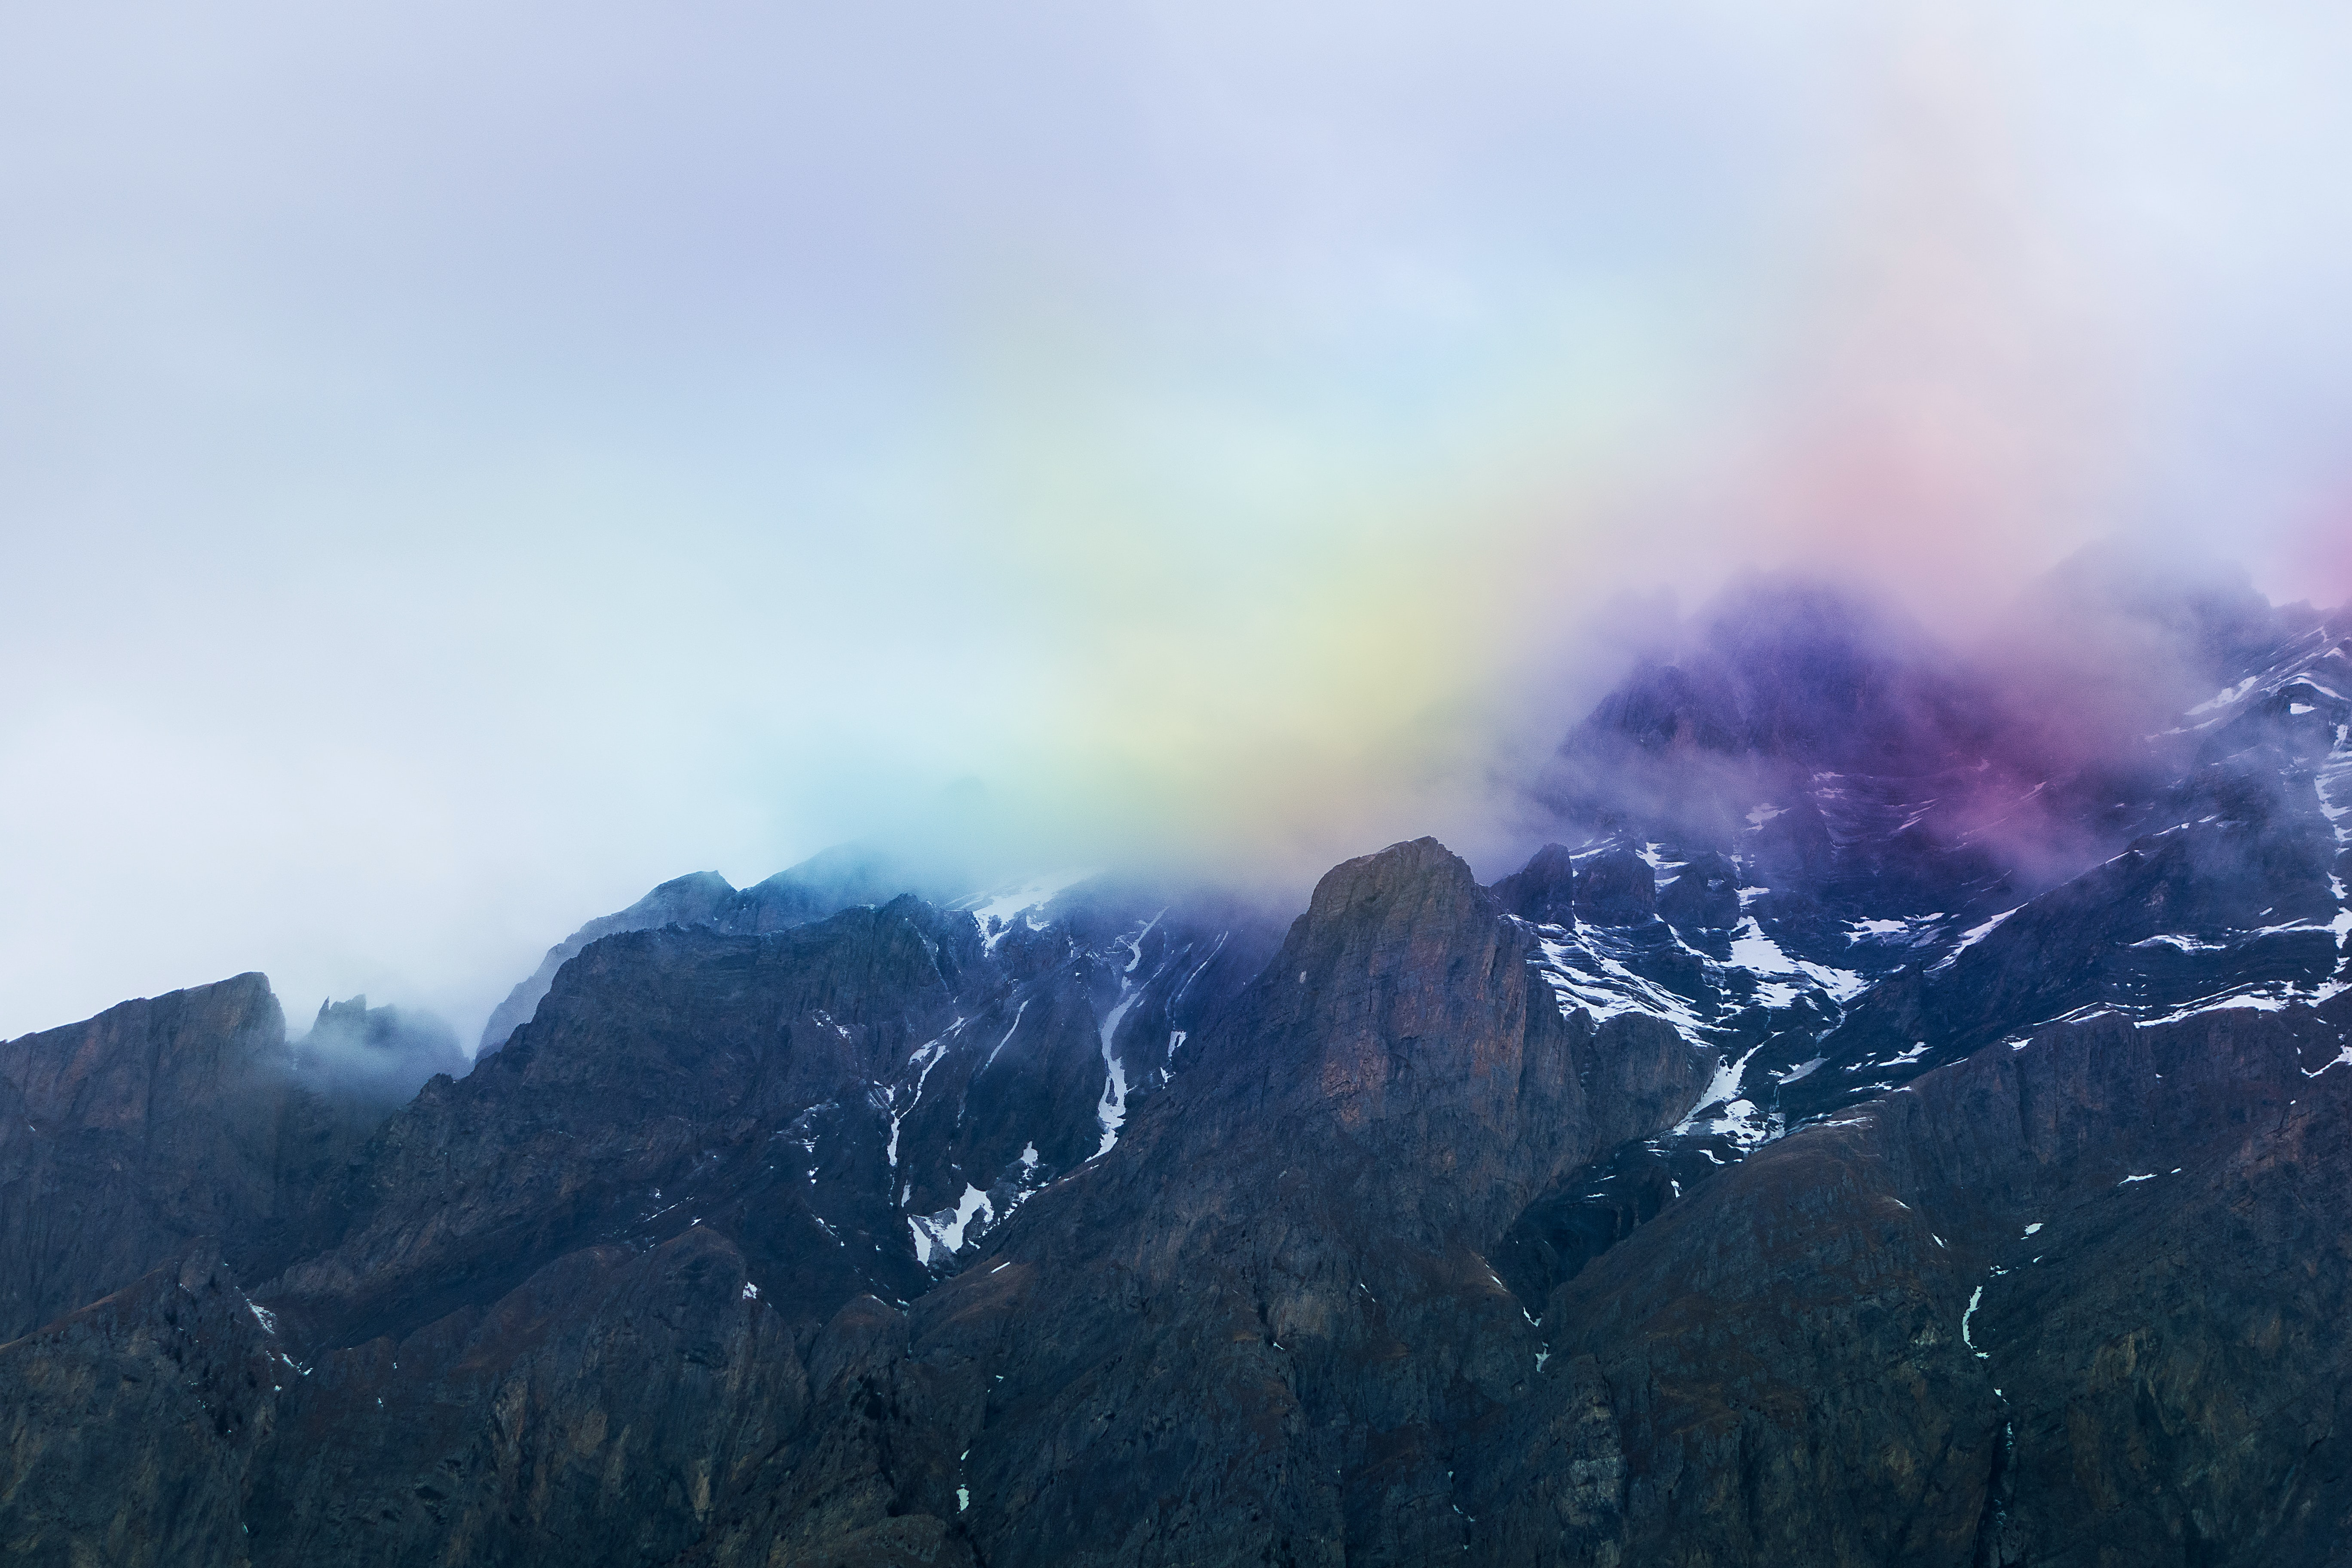 Rainbow colored smoke and clouds over dark mountains in Ovronnaz